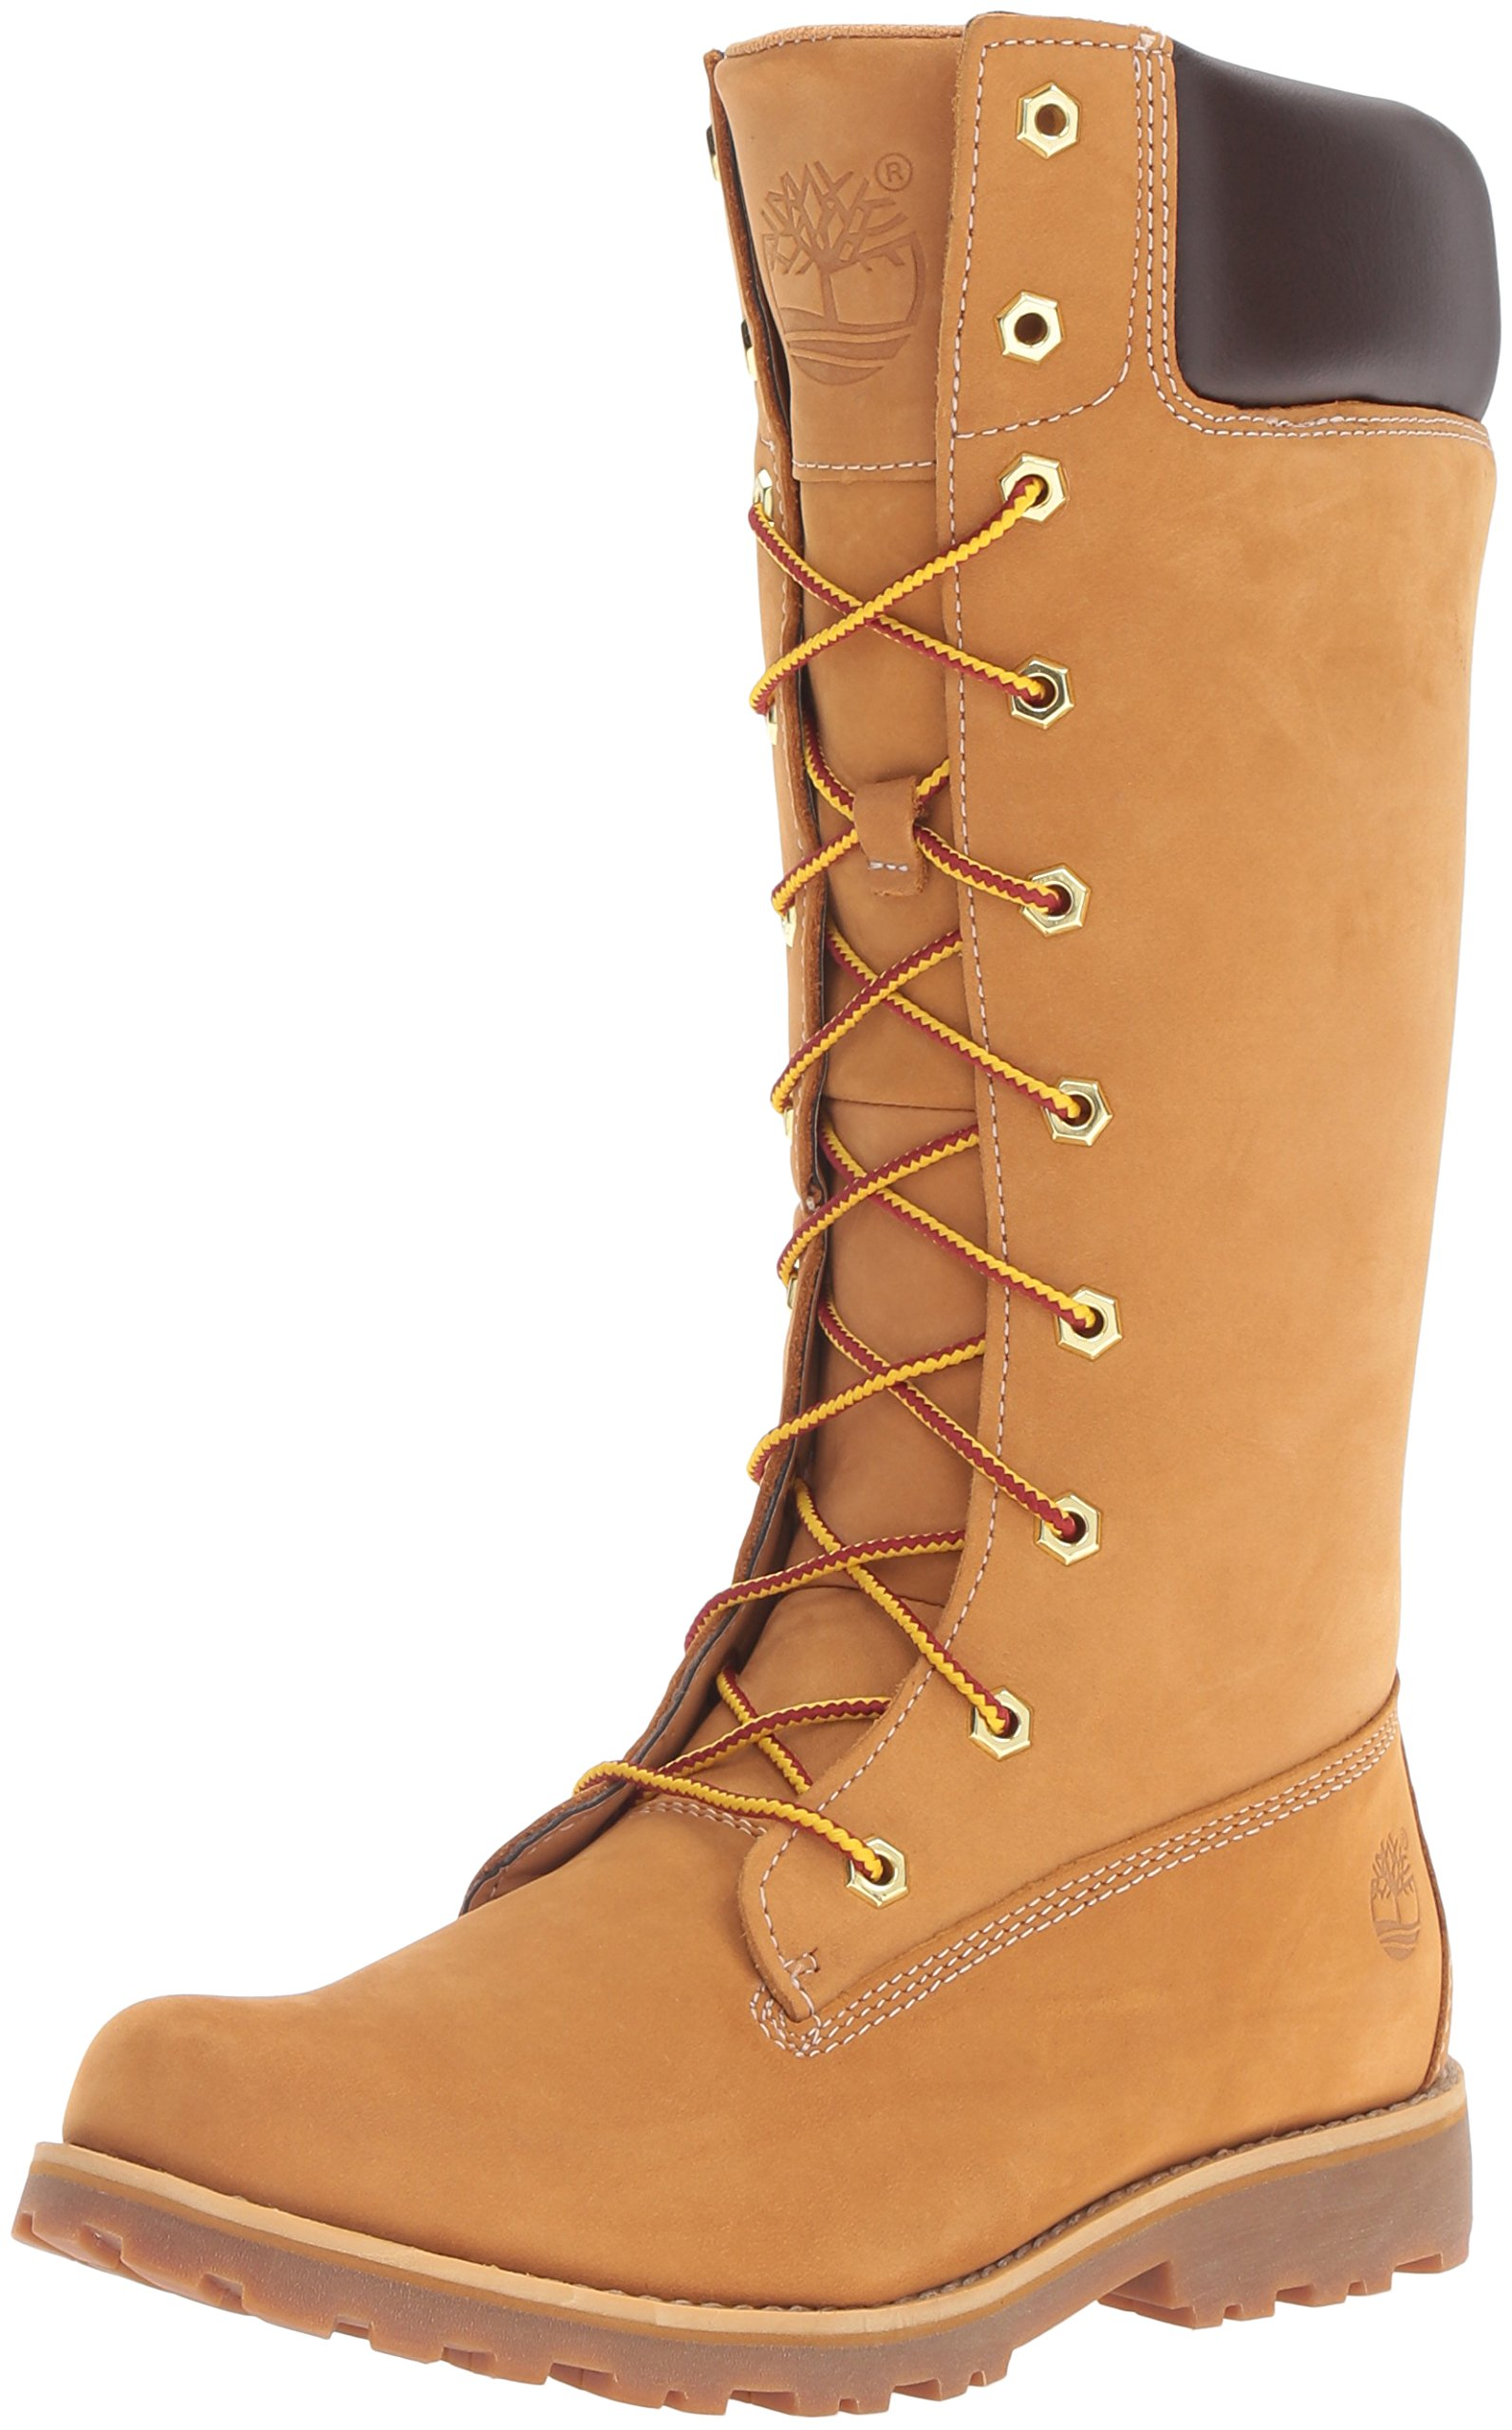 Timberland Asphalt Trail Classic Tall Lace Up With Side Zip (Toddler/Little Kid/Big Kid),Wheat,6.5 M US Big Kid